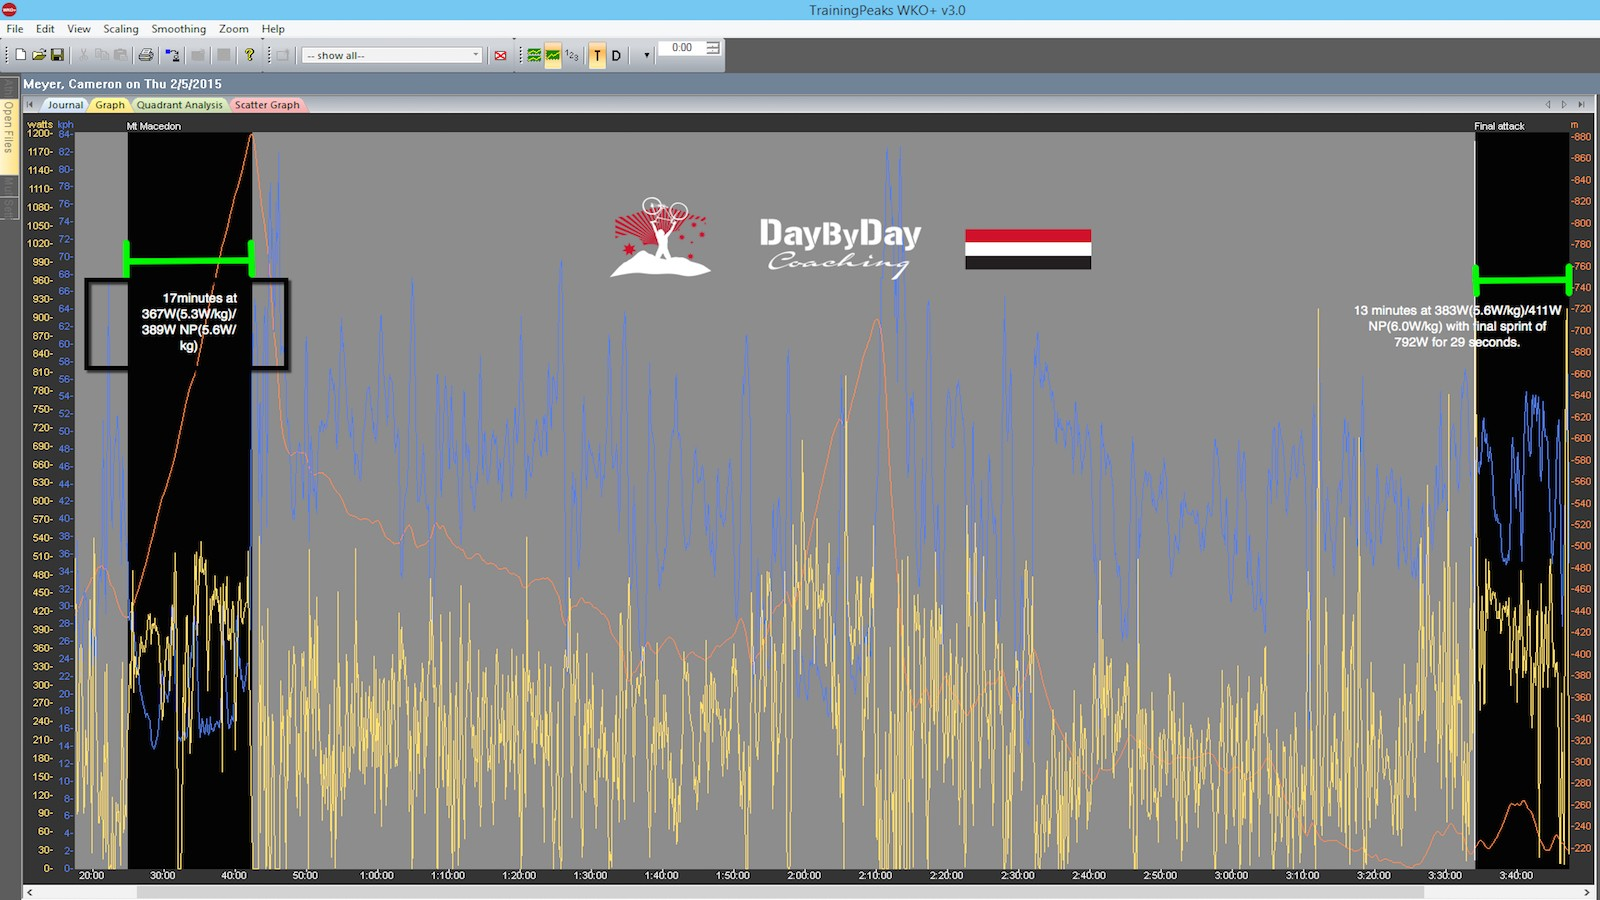 Cameron Meyer's power data from stage one of the Jayco Herald Sun Tour